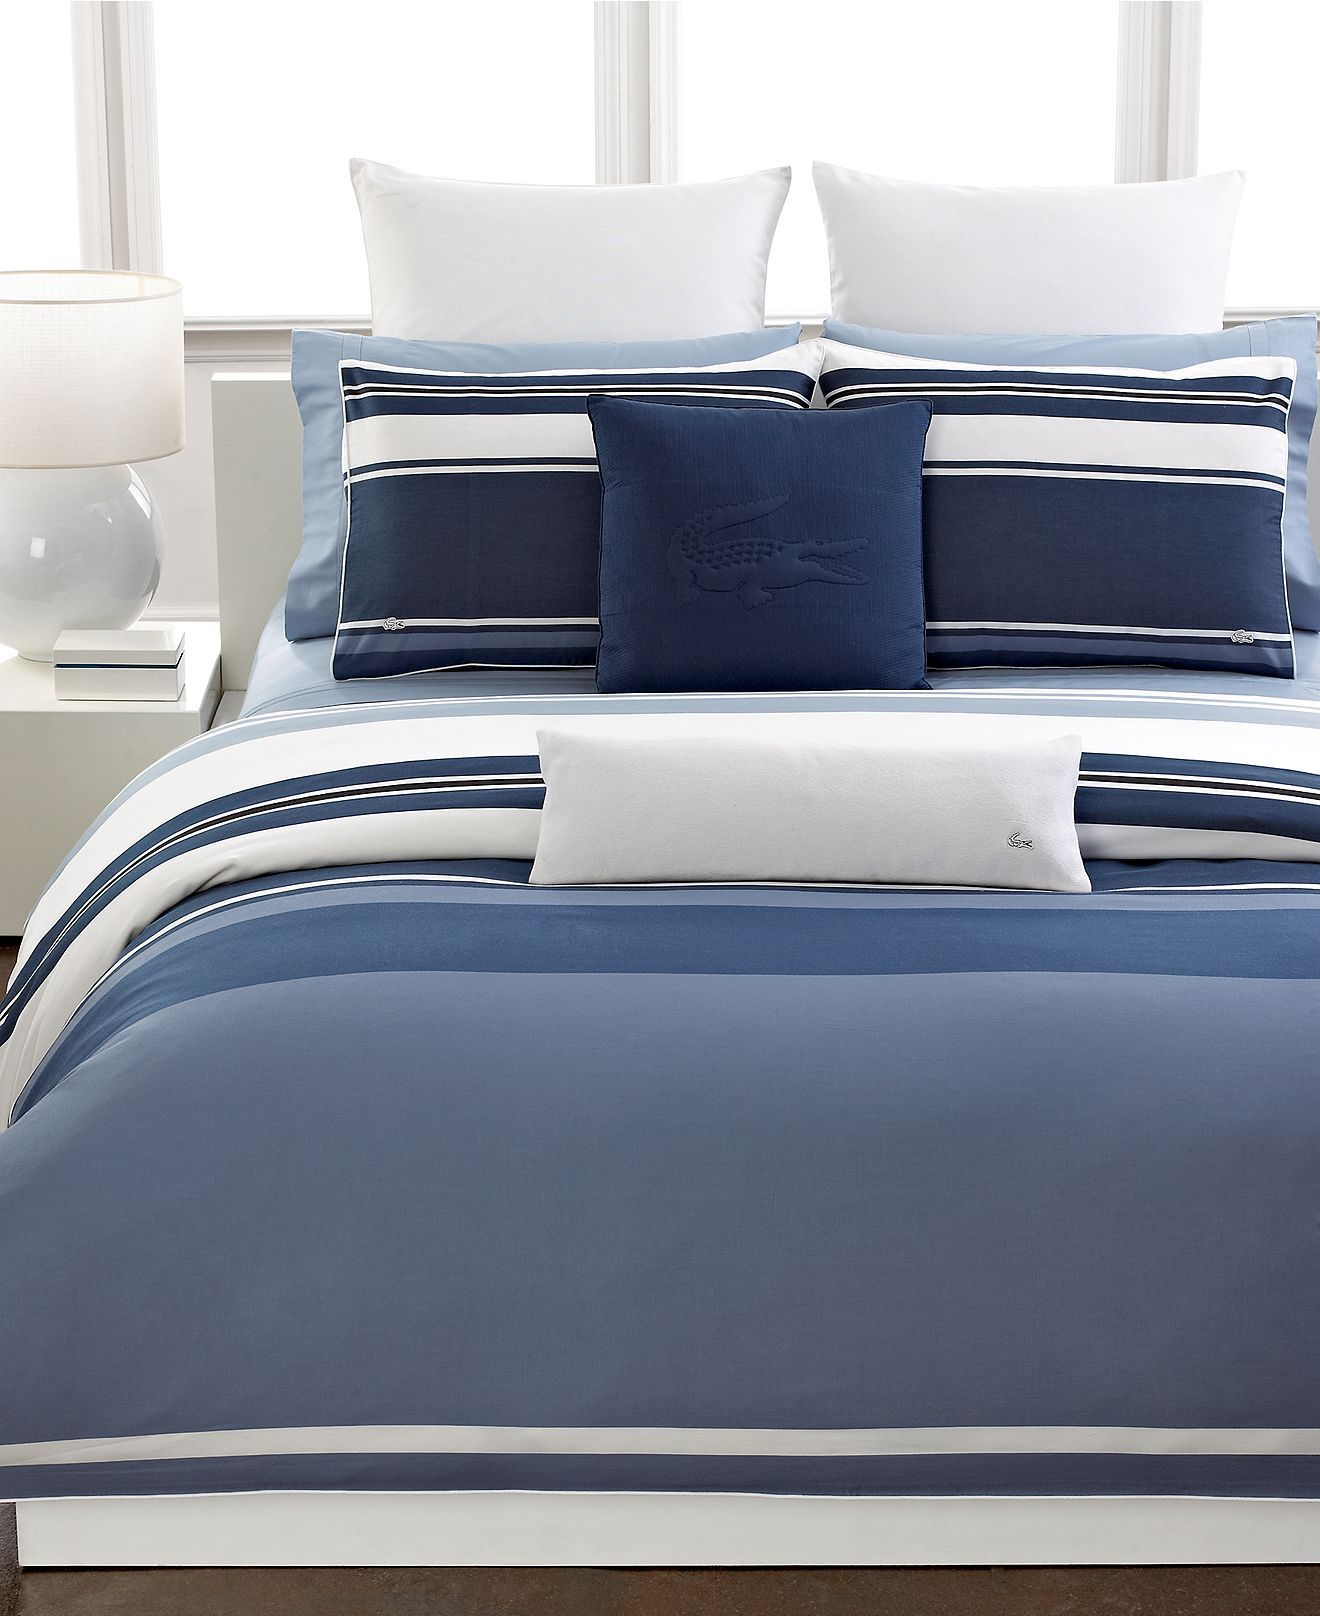 Lacoste Bedding, Borego Collection - Bedding Collections - Bed ...